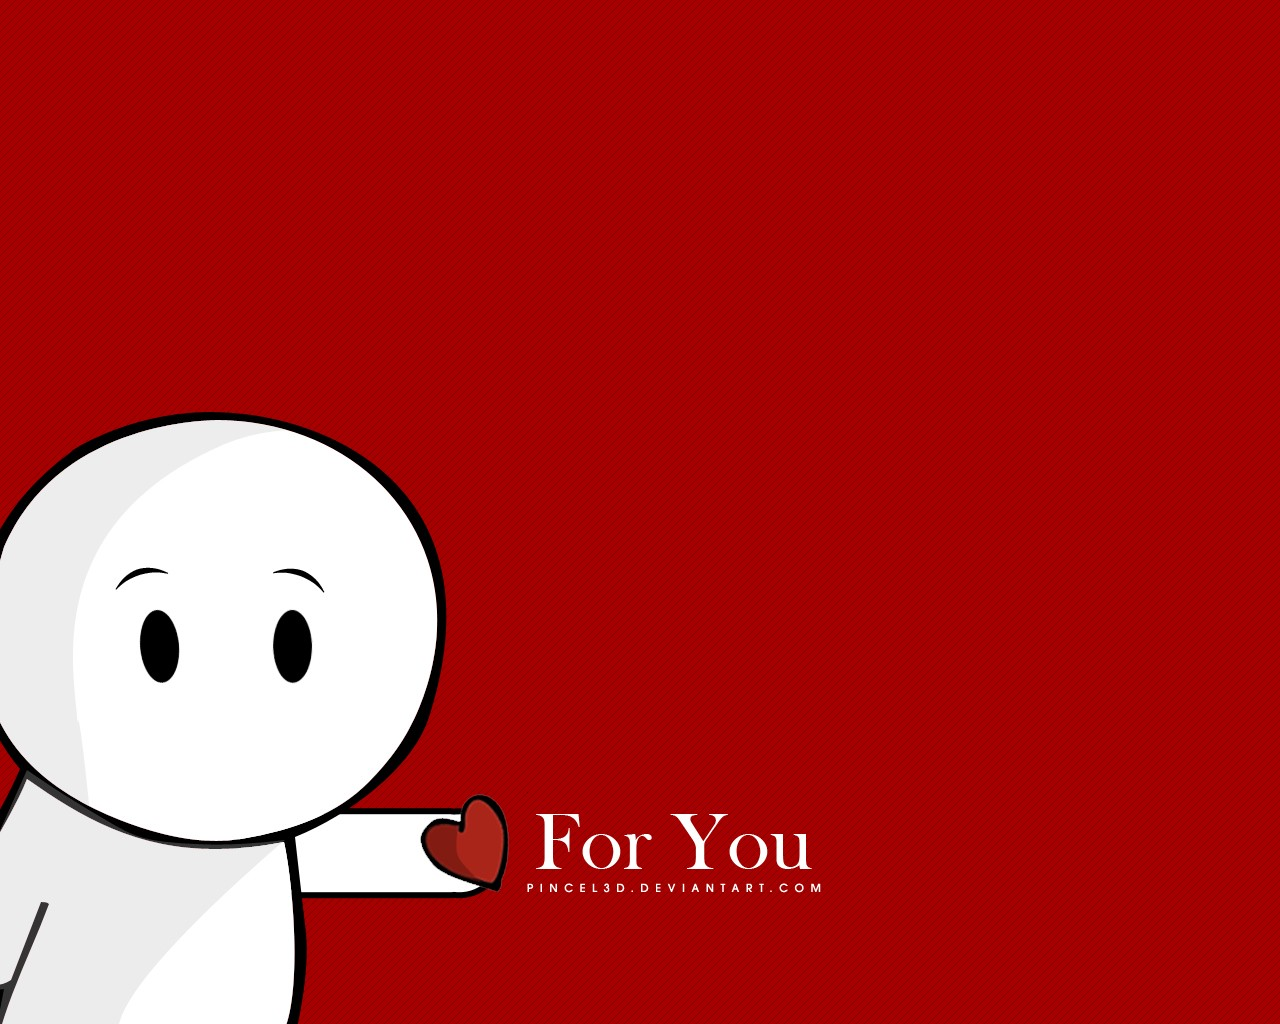 Wallpaper I Love You Photo : I Love You Wallpapers HD A16 - HD Desktop Wallpapers 4k HD